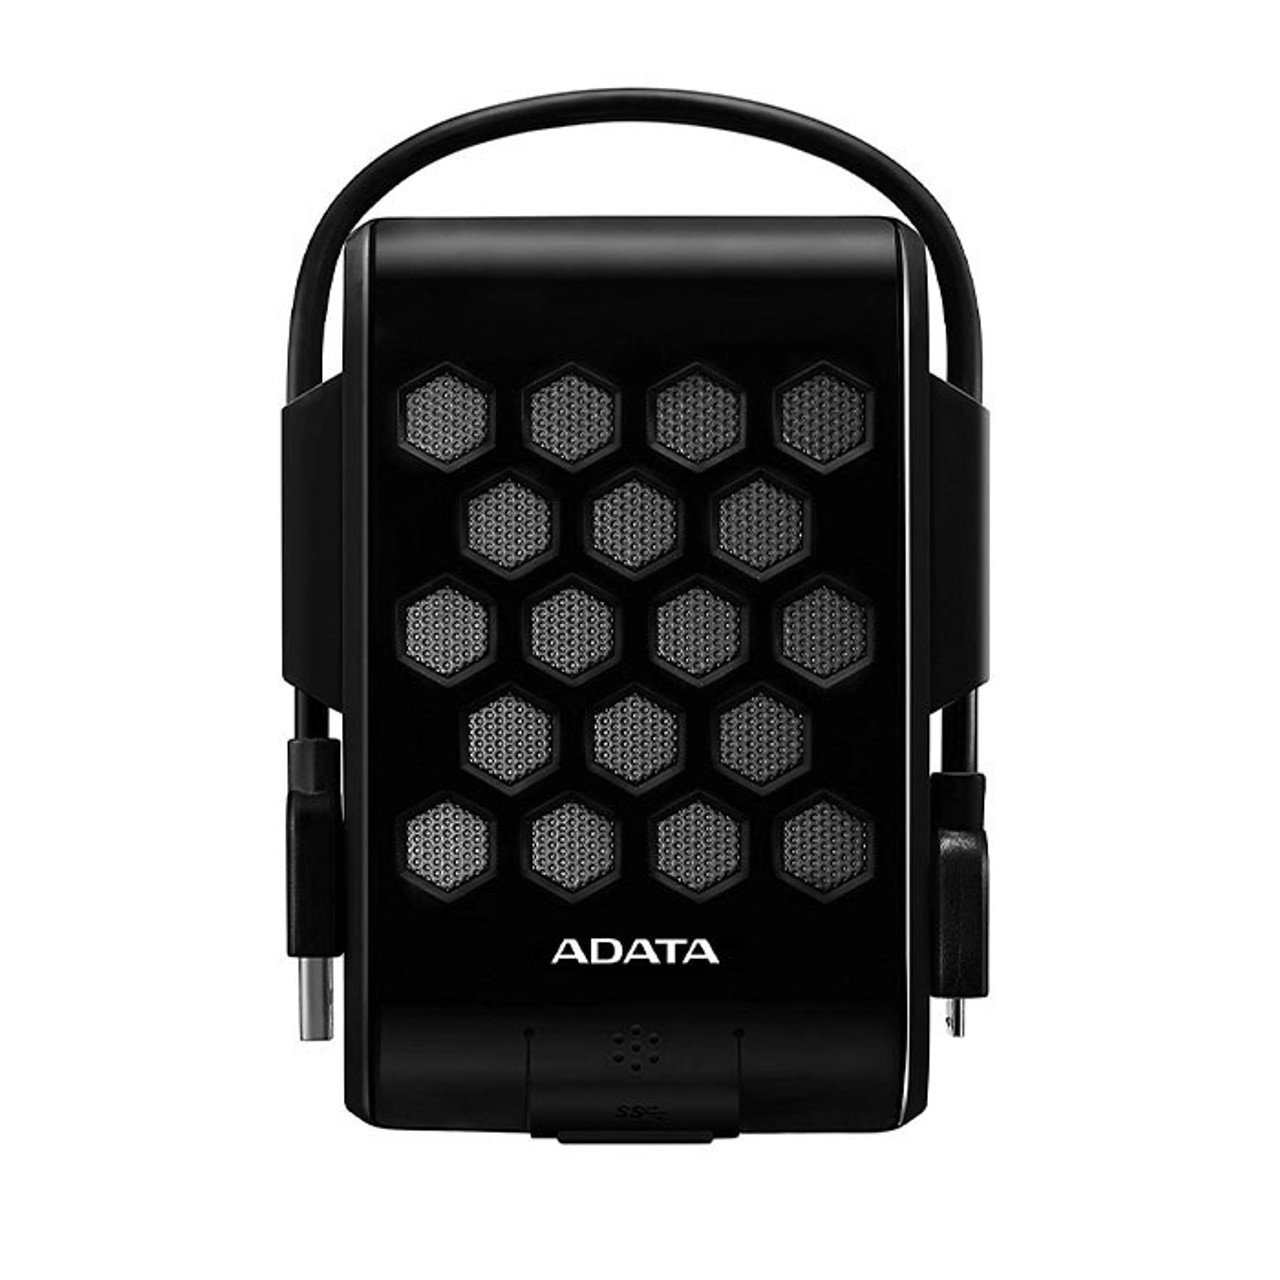 Image for Adata HD720 1TB USB 3.0 Military-Grade Shockproof Portable External HDD - Black CX Computer Superstore